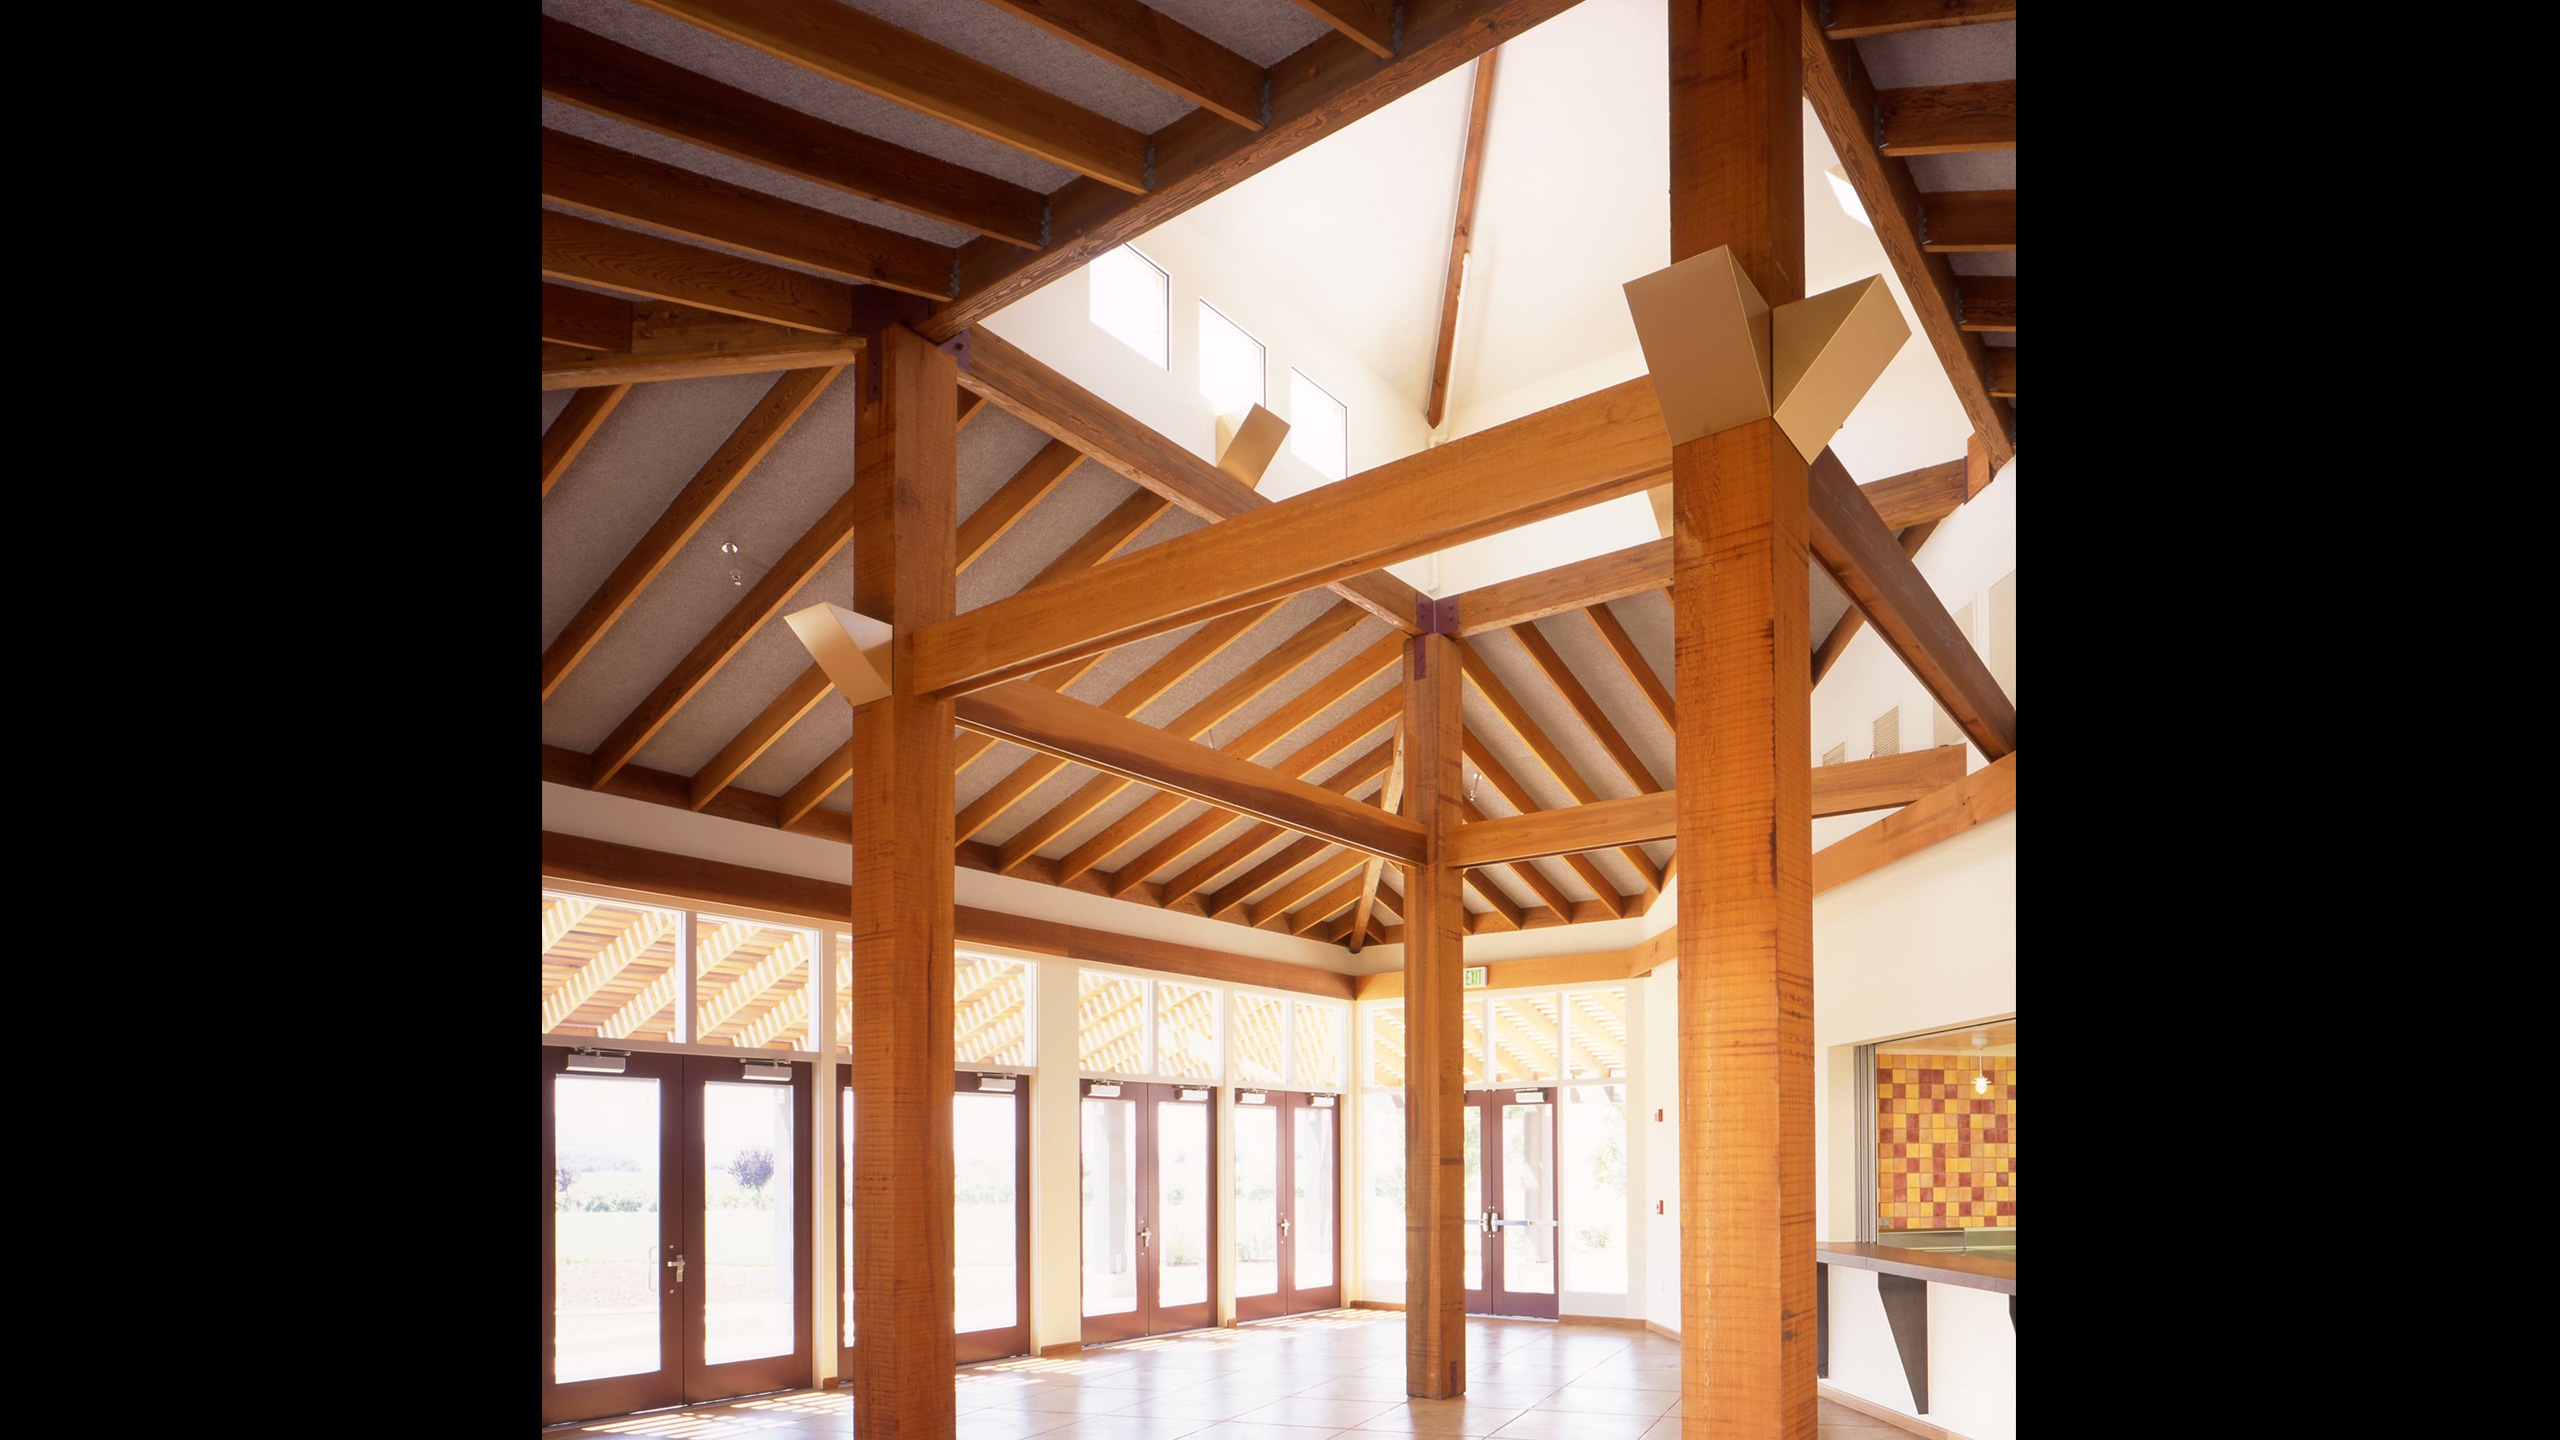 Winery-Architecture-Geyserville-Clos-du-Bois-wood-ceiling